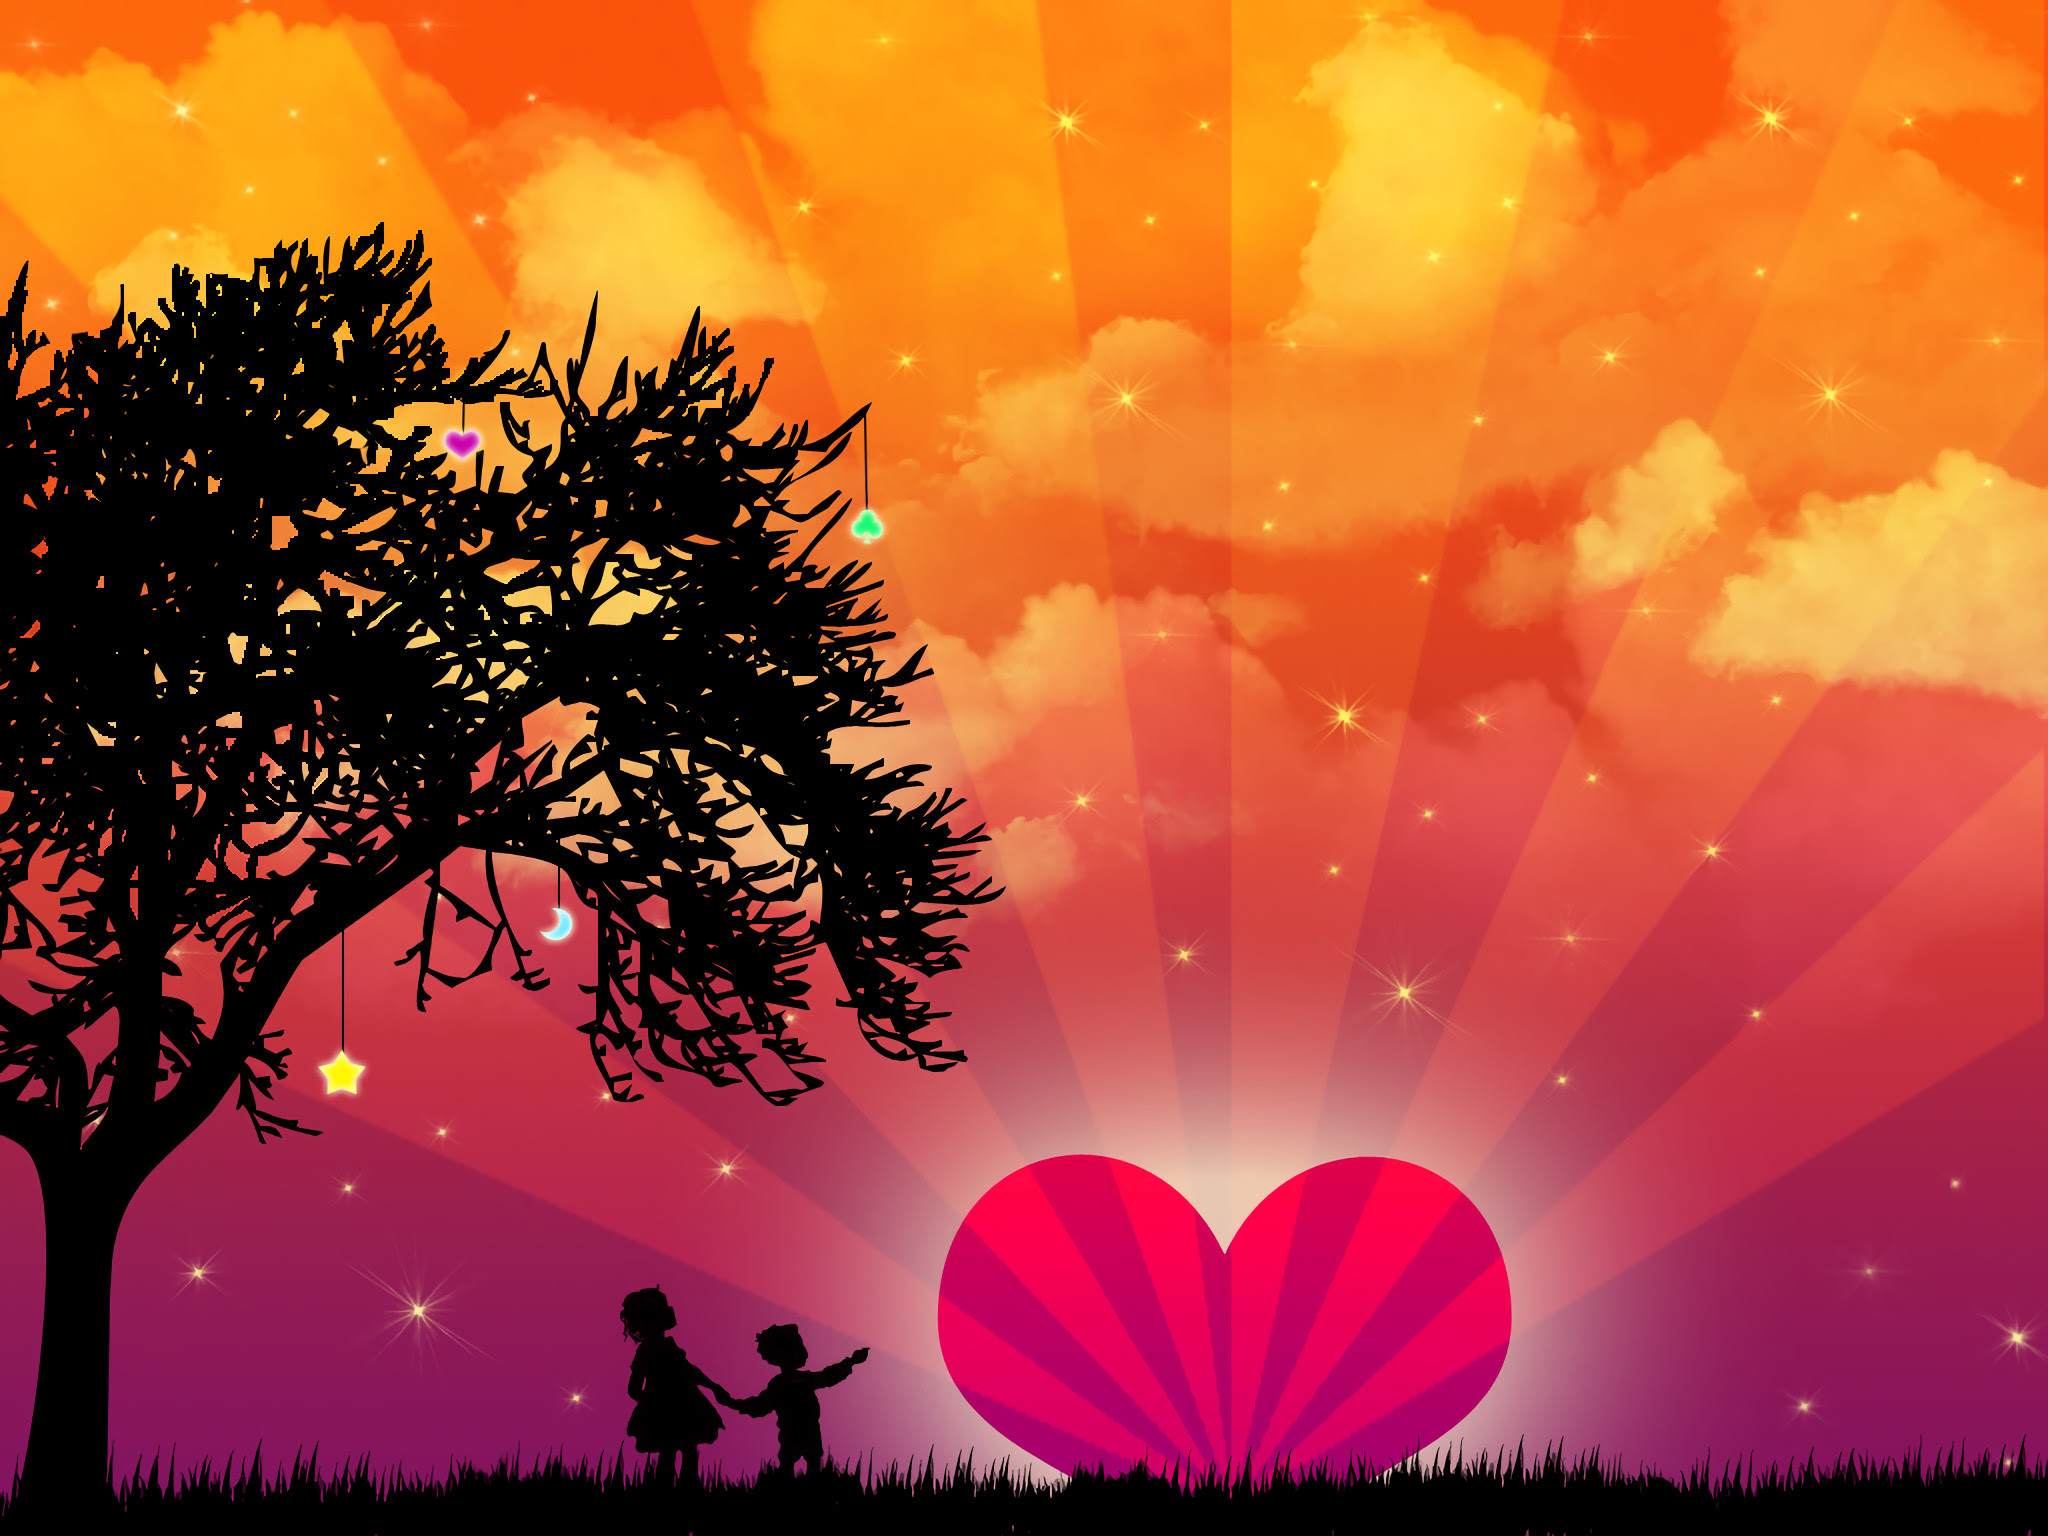 Cute Love Wallpapers for Desktop (66+ images)